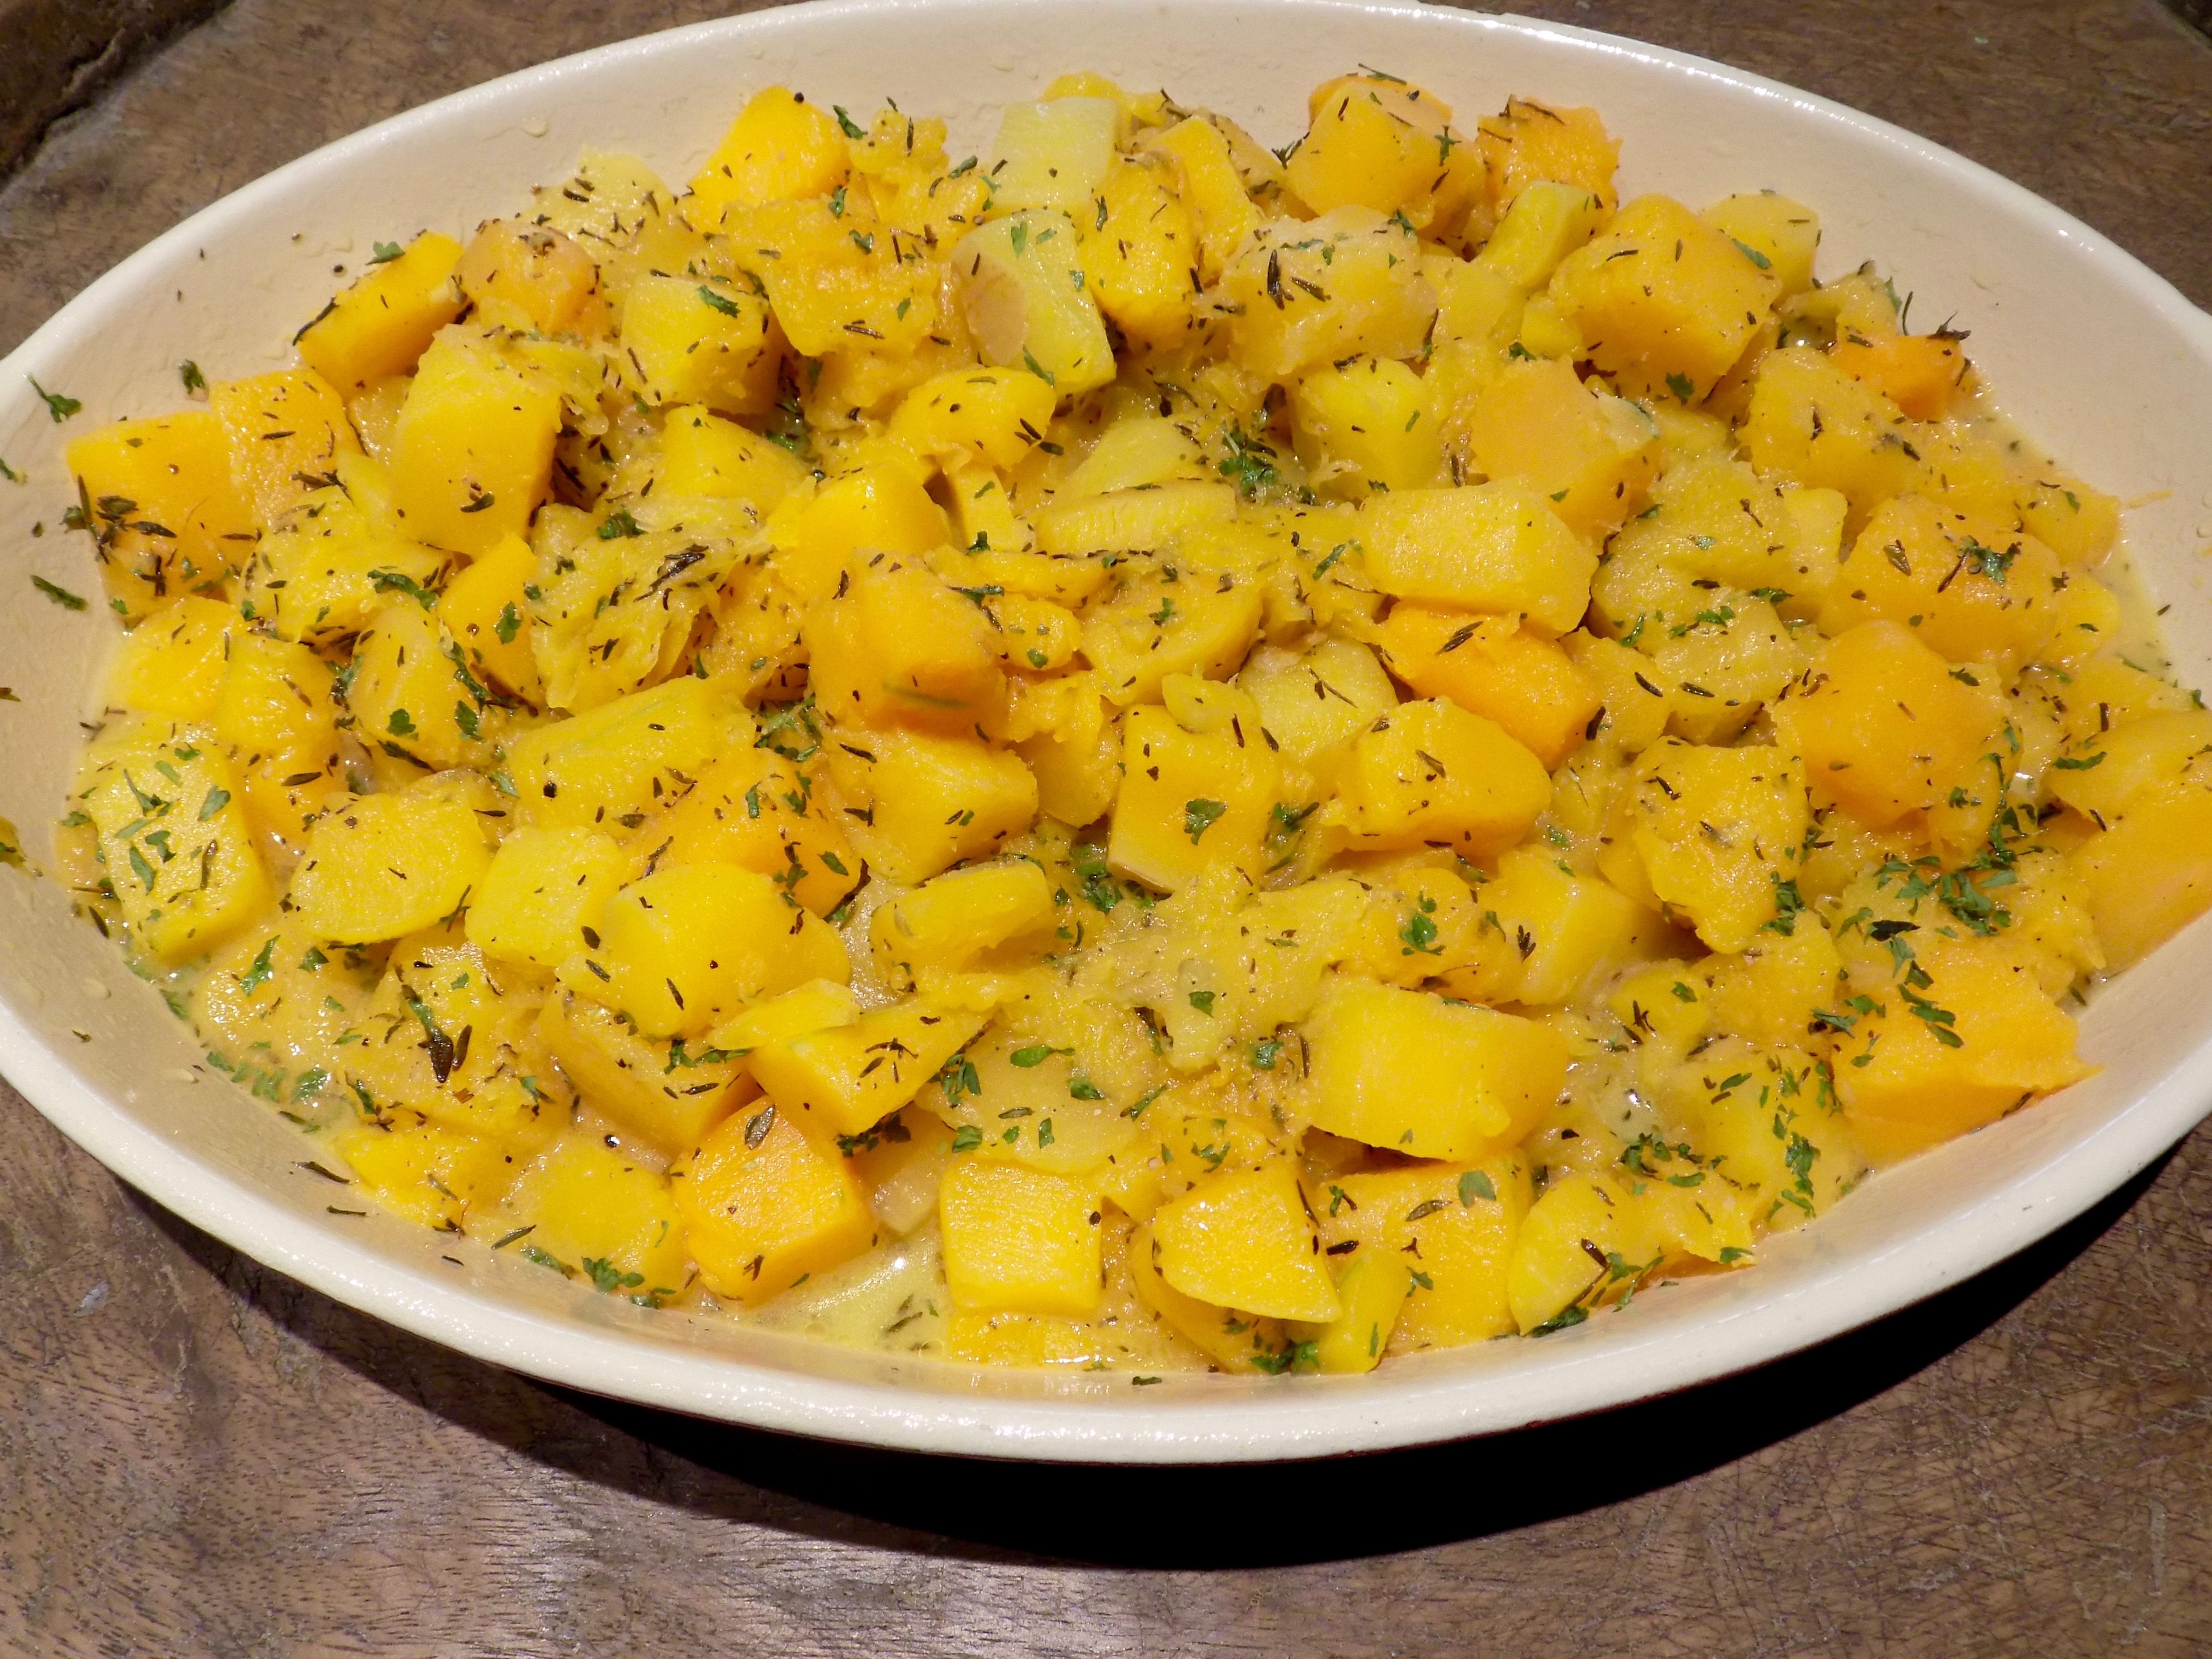 THE ROASTED SQUASH IS WAITING FOR ITS TOPPING MIXTURE.